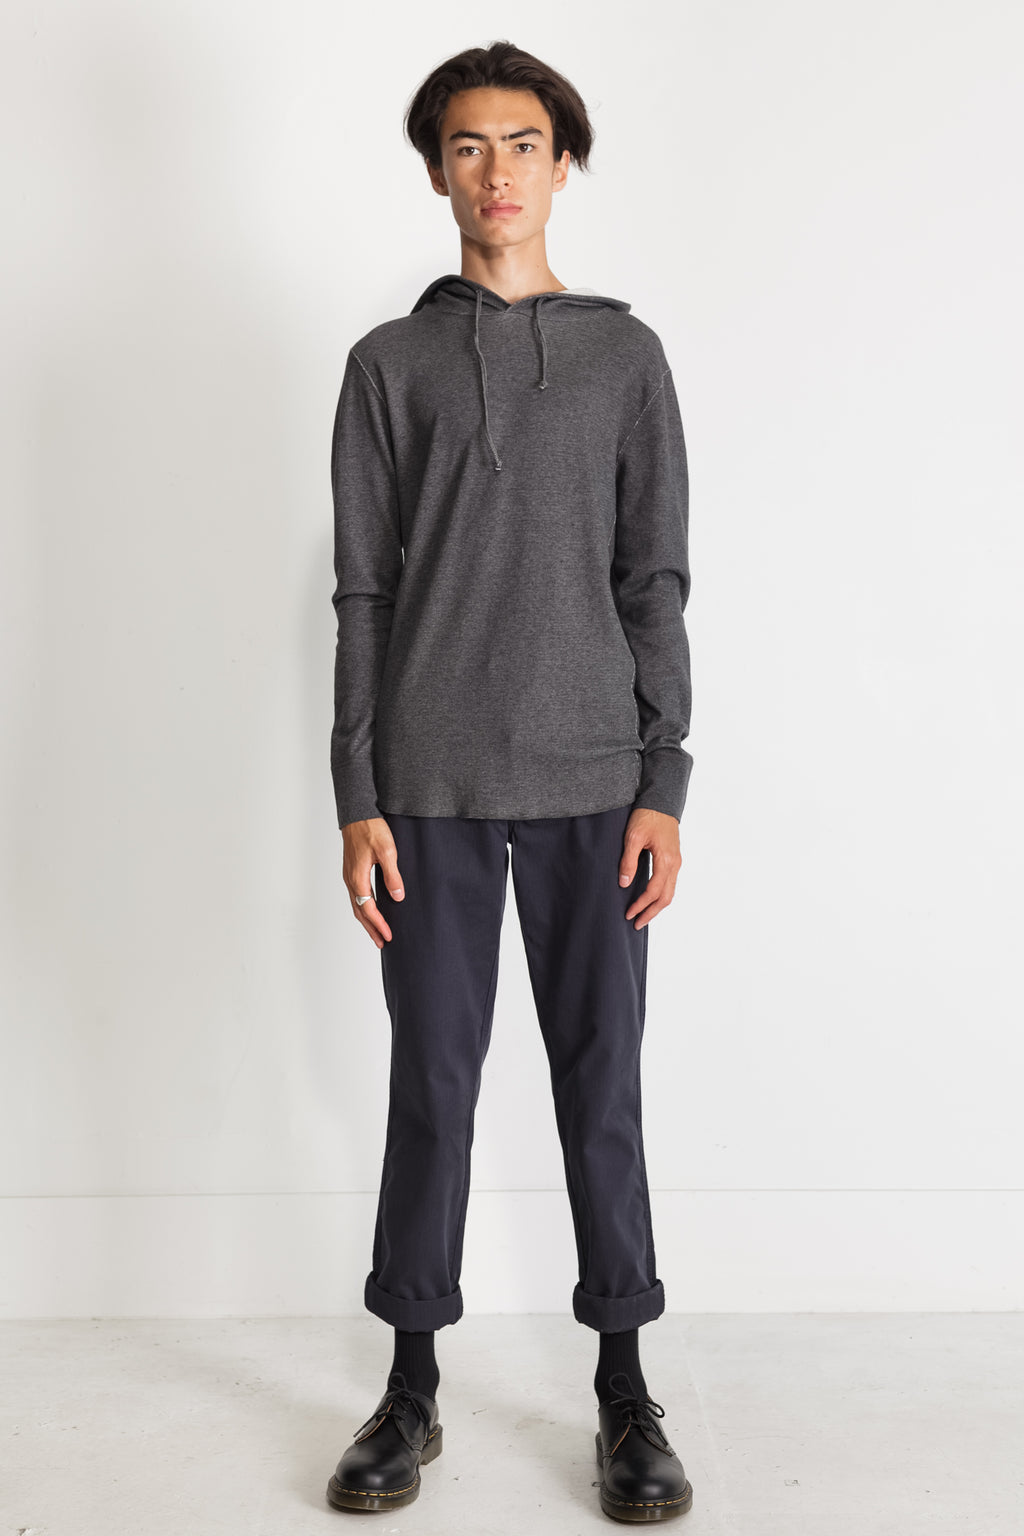 NS2155-1 Mesh Thermal Pullover Hoodie in Melange Charcoal